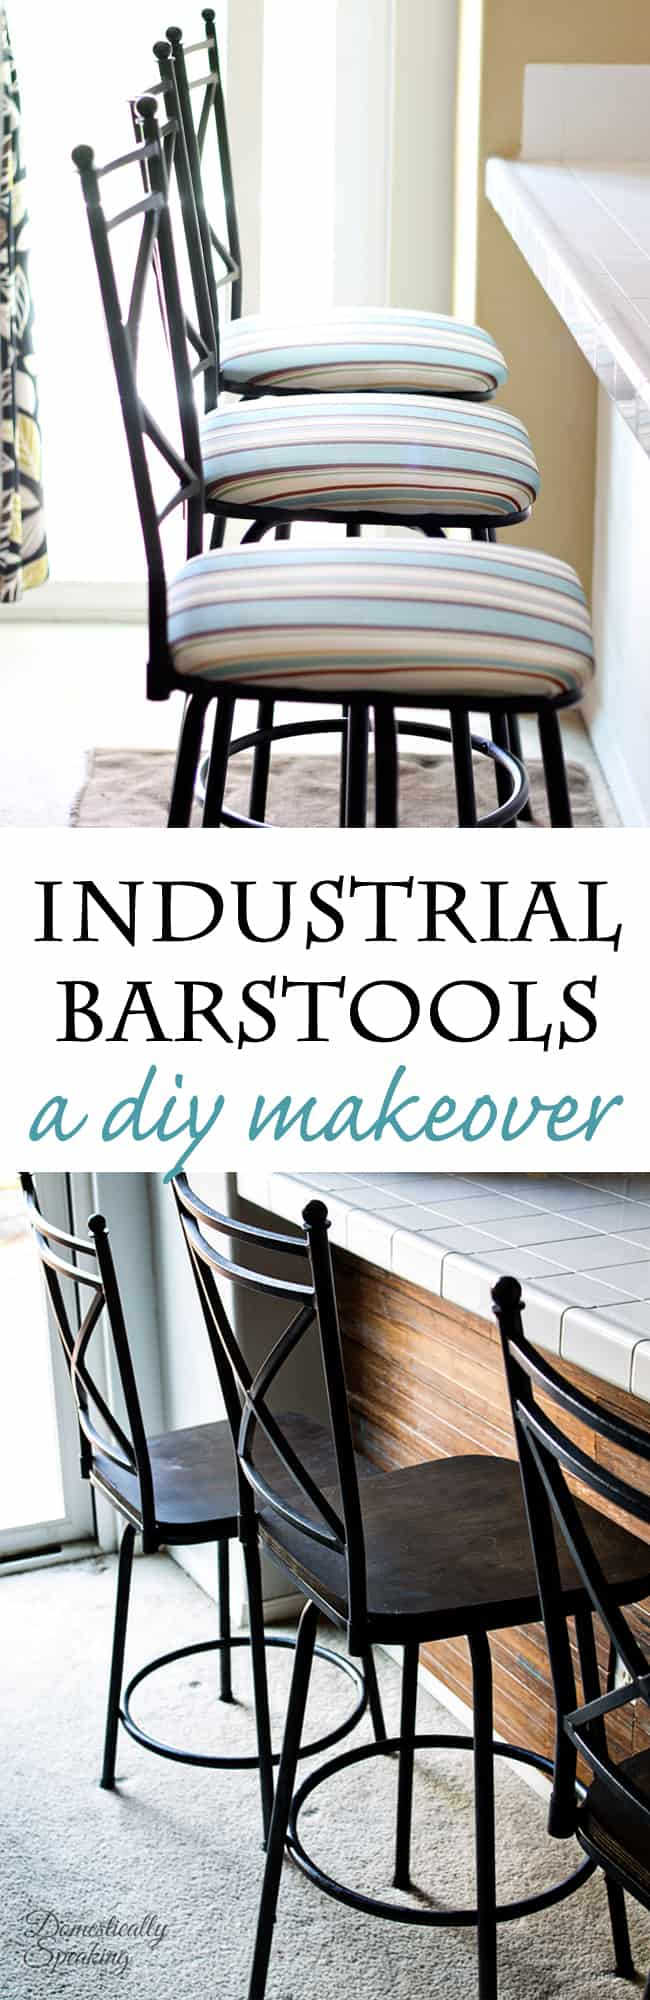 Industrial Barstool Makeover using stain and paint! It's easier than you think!